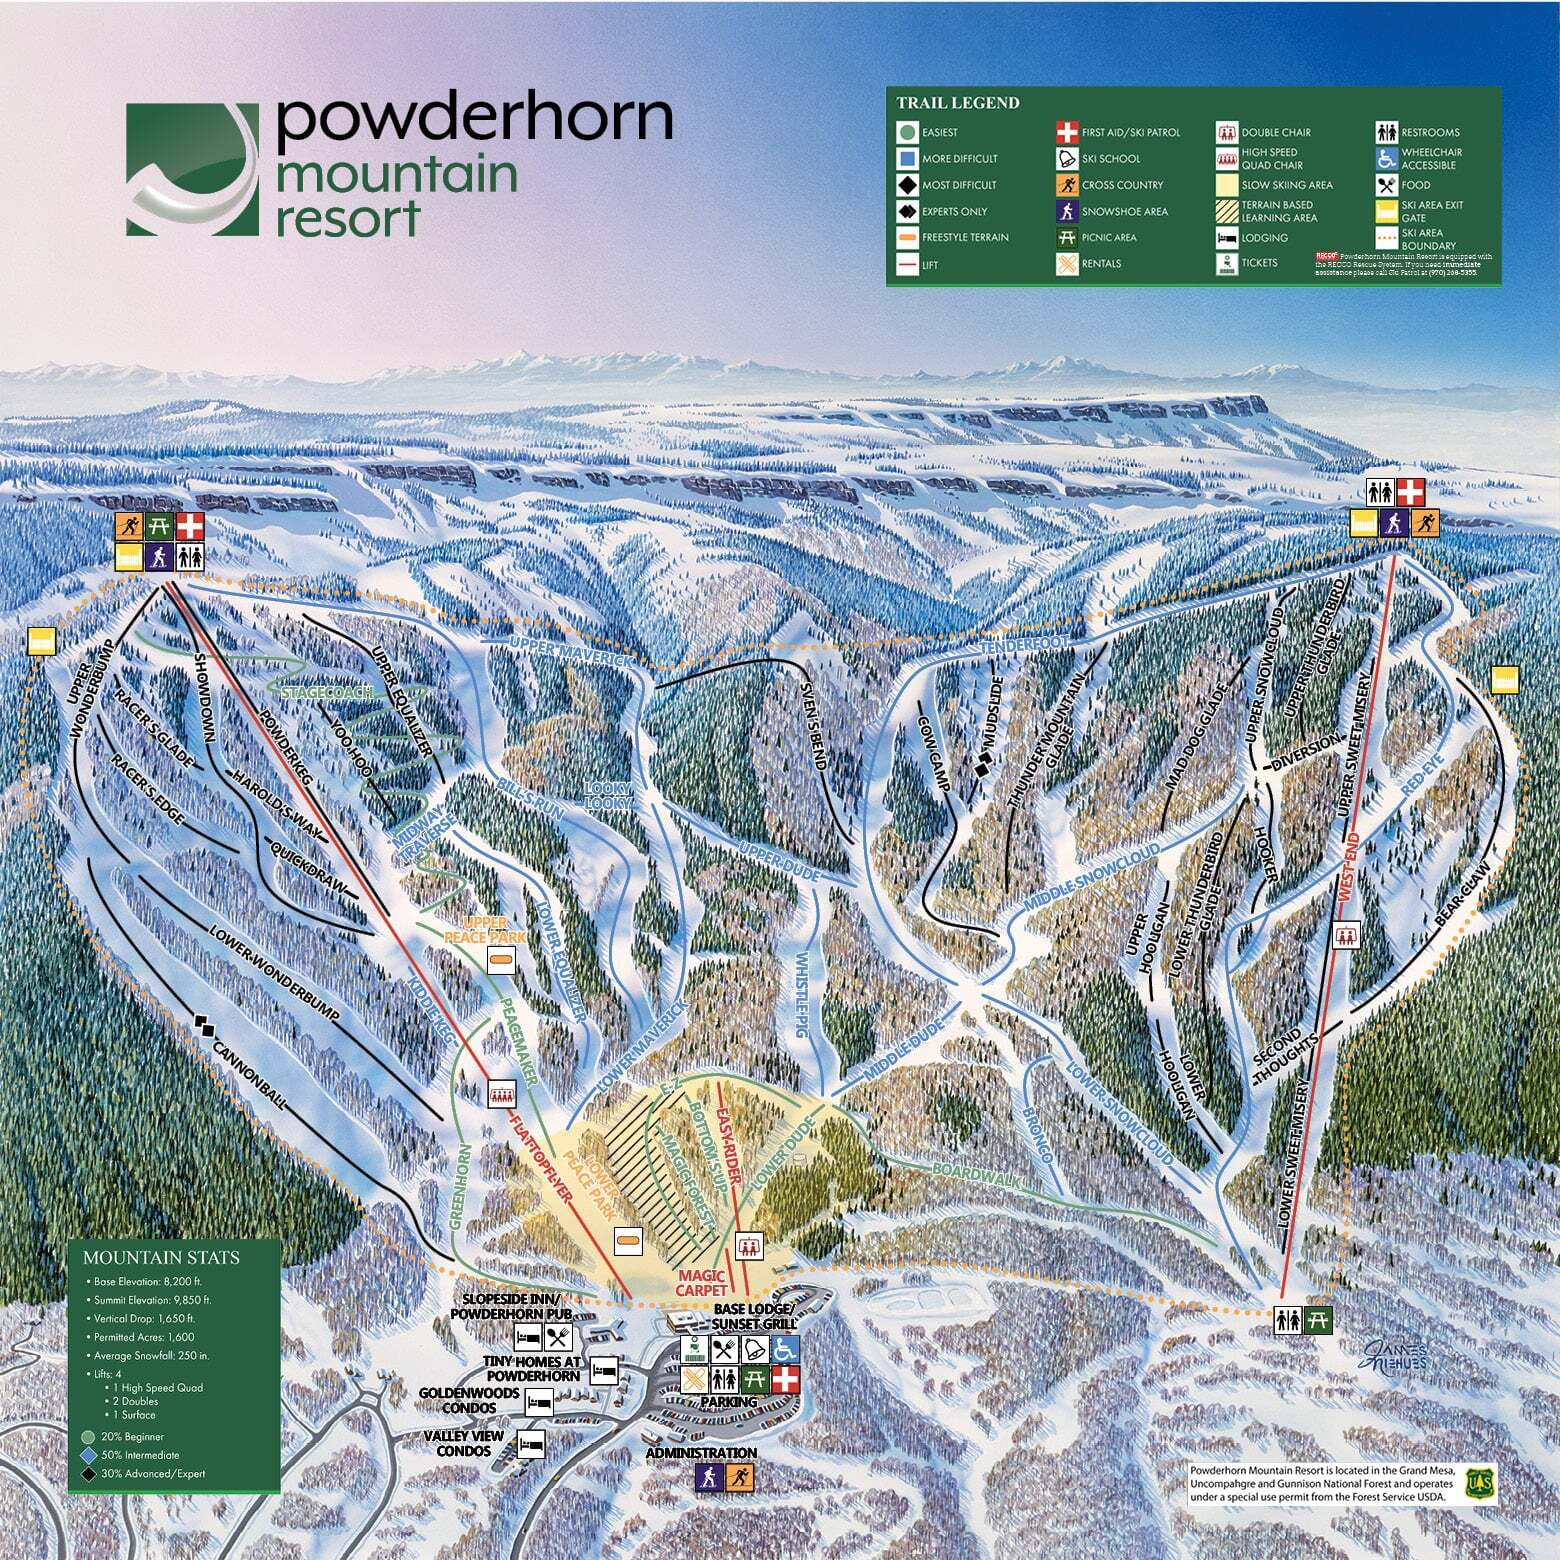 Powderhorn Piste / Trail Map